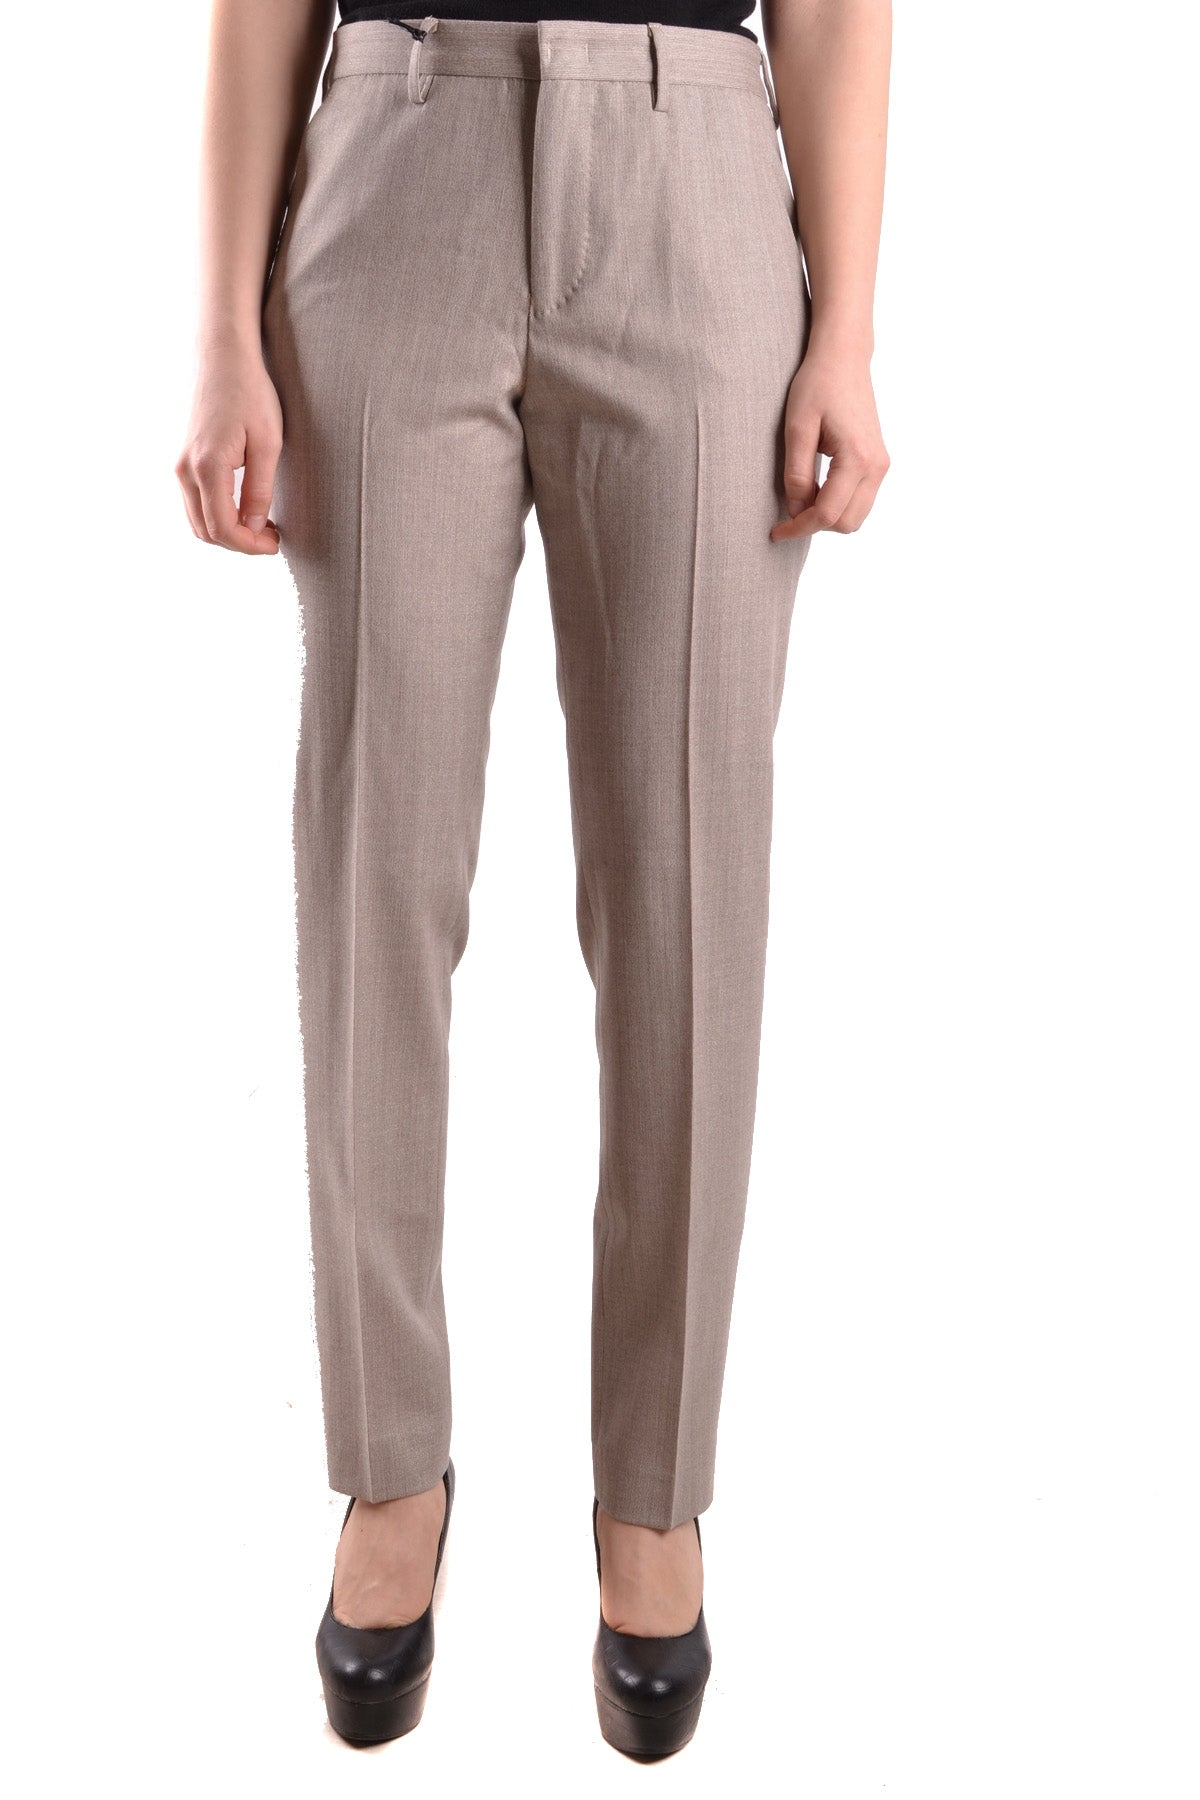 Trousers Pt01/Pt05-Trousers - WOMAN-40-Product Details Terms: New With LabelYear: 2017Main Color: BeigeSeason: Fall / WinterMade In: ItalySize: ItGender: WomanComposition: Elastane 5%, Wool 84%, Polyester 3%, Viscose 8%-Keyomi-Sook